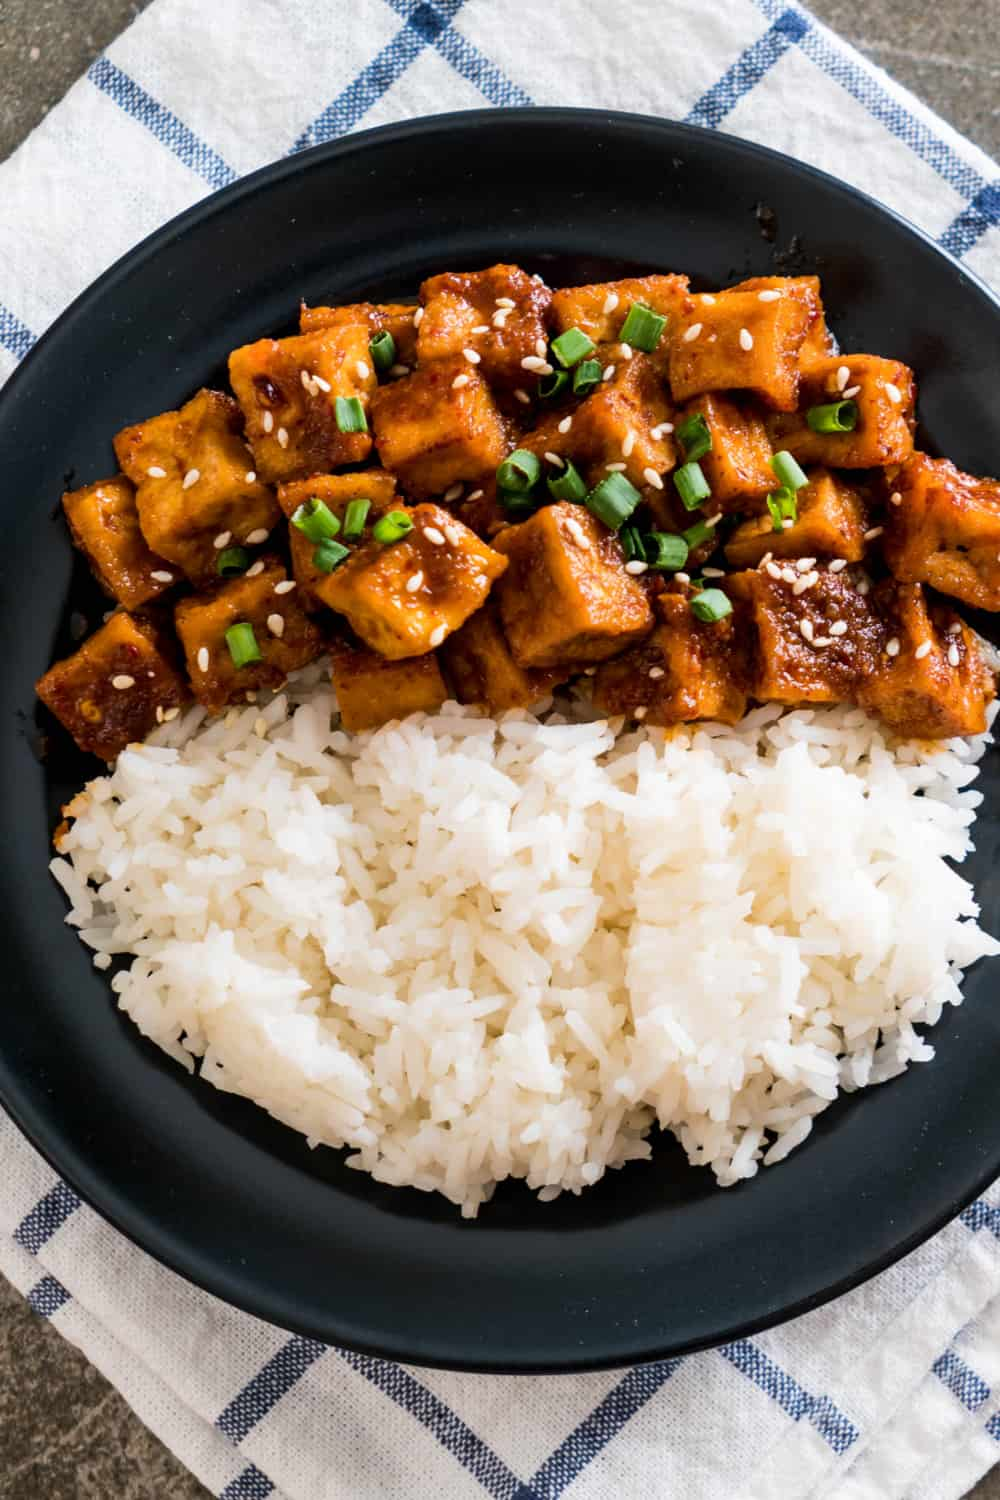 The Risk of Consuming an Expired Tofu